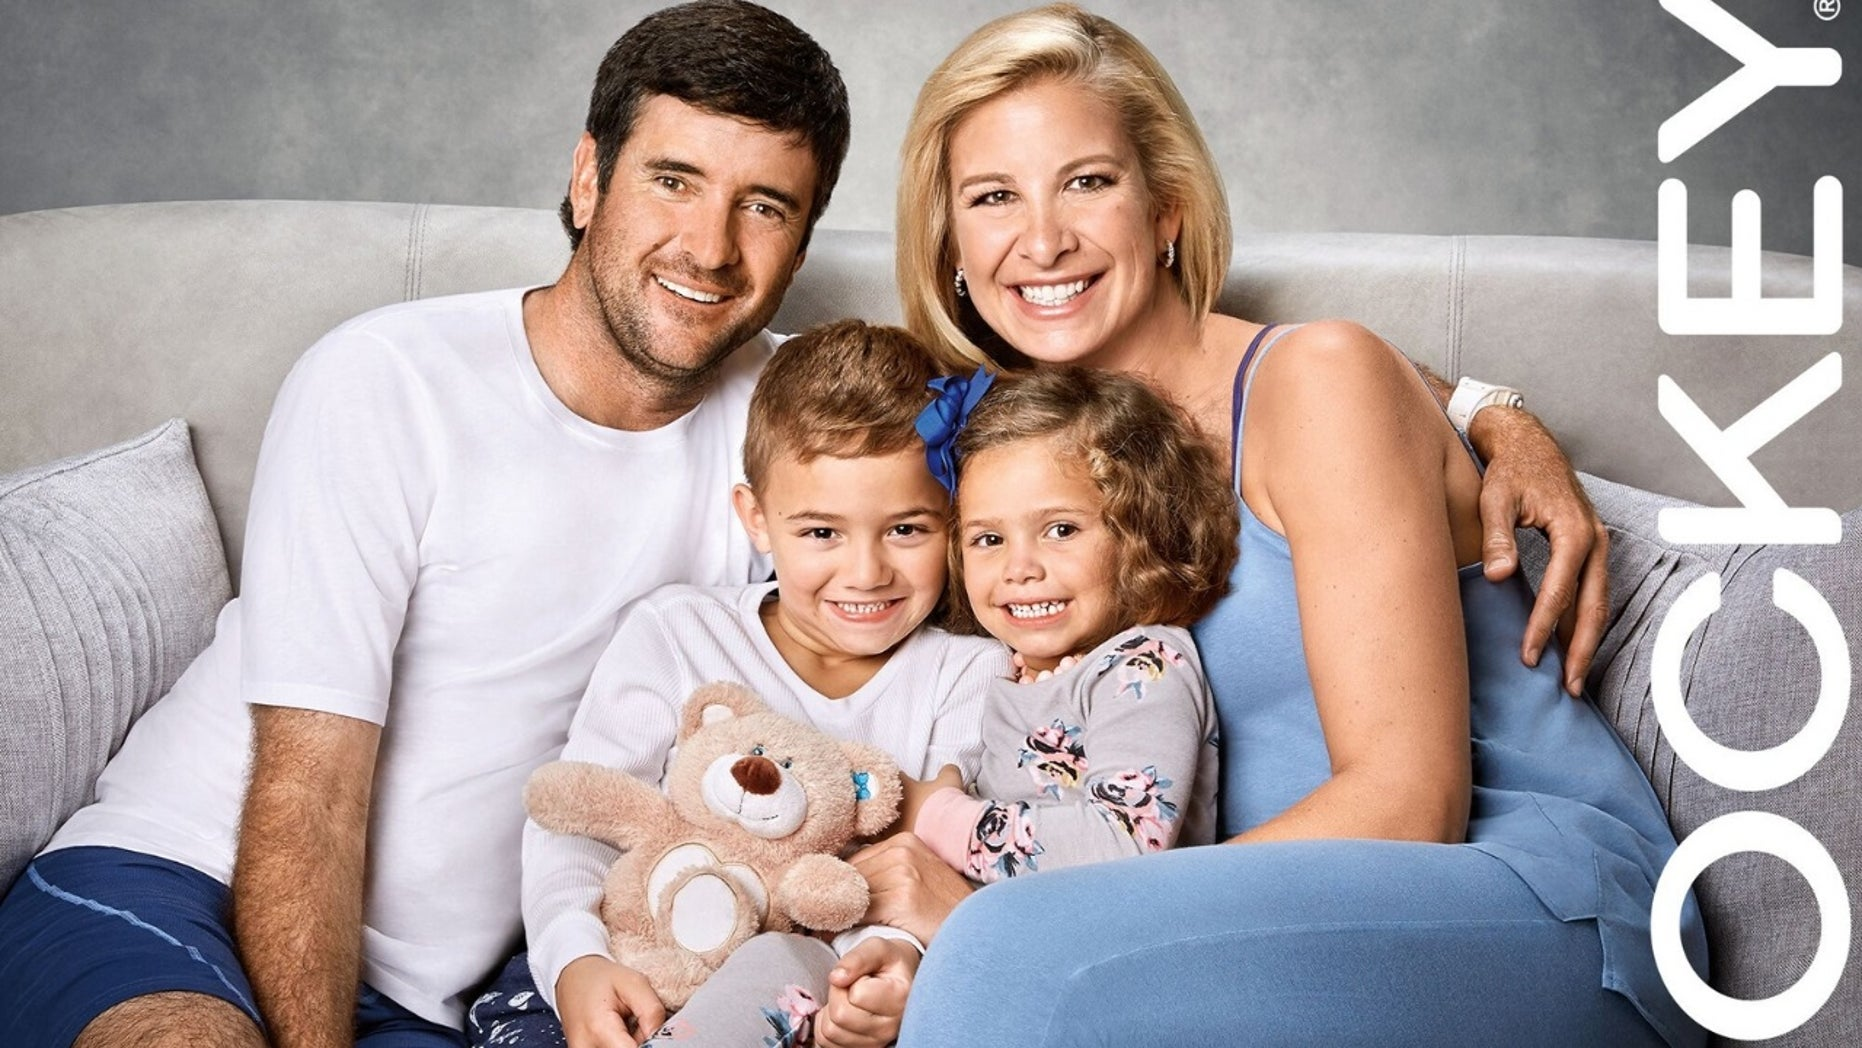 Two-time Masters Tournament champion Bubba Watson, his mother Angie and their dual adopted children, Caleb and Dakota.